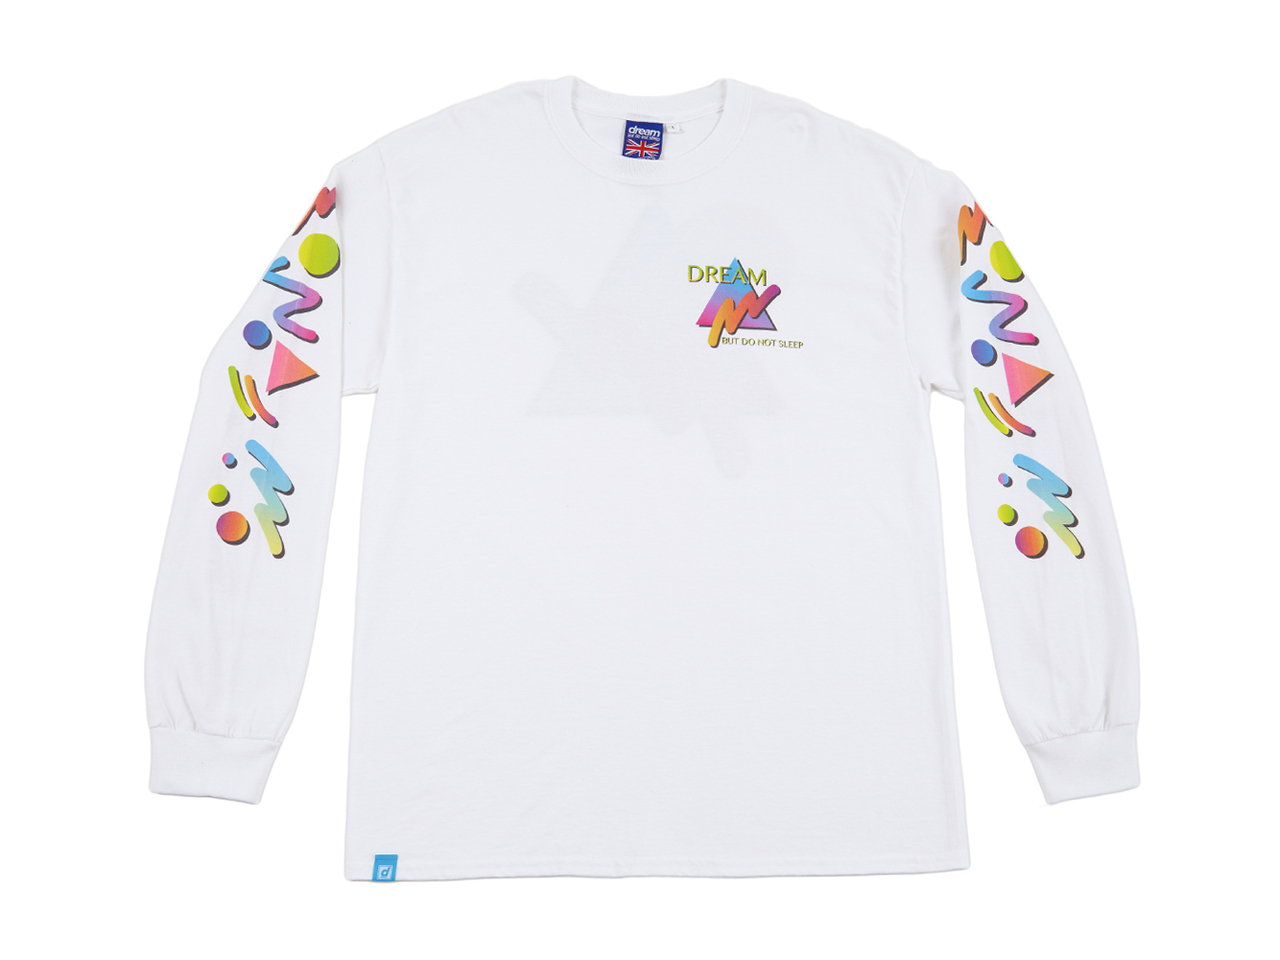 35664a86 Colourful 90s Gradient Design On White Long Sleeved T-shirt - Dream ...